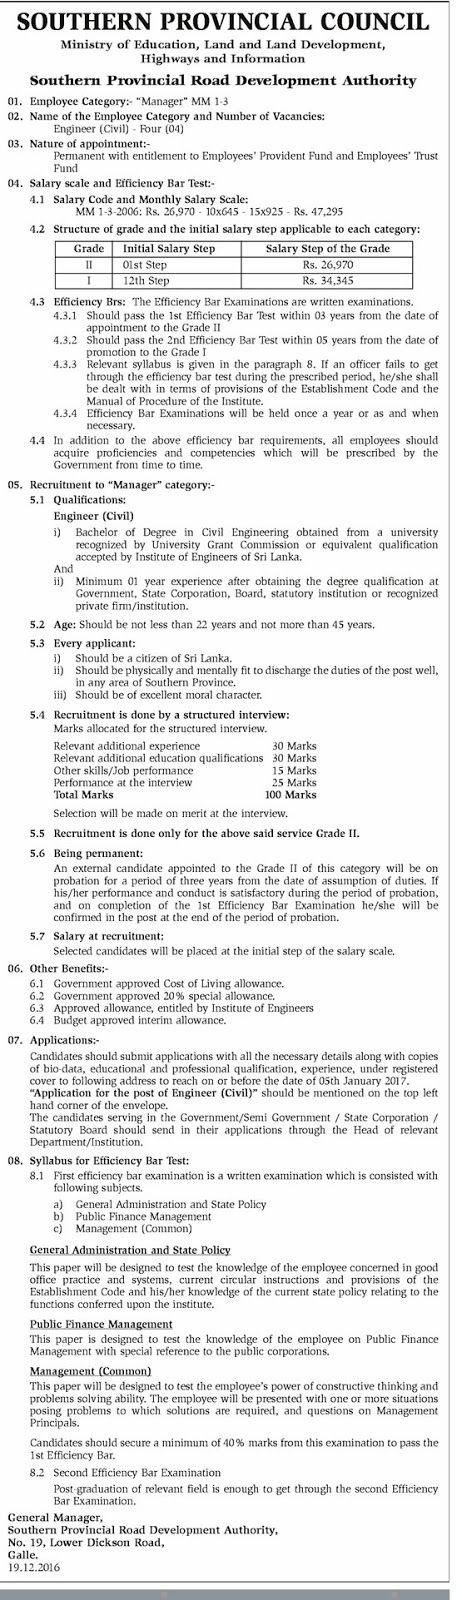 Sri Lankan Government Job Vacancies at Southern Provincial Road Development Authority for Civil Engineers.